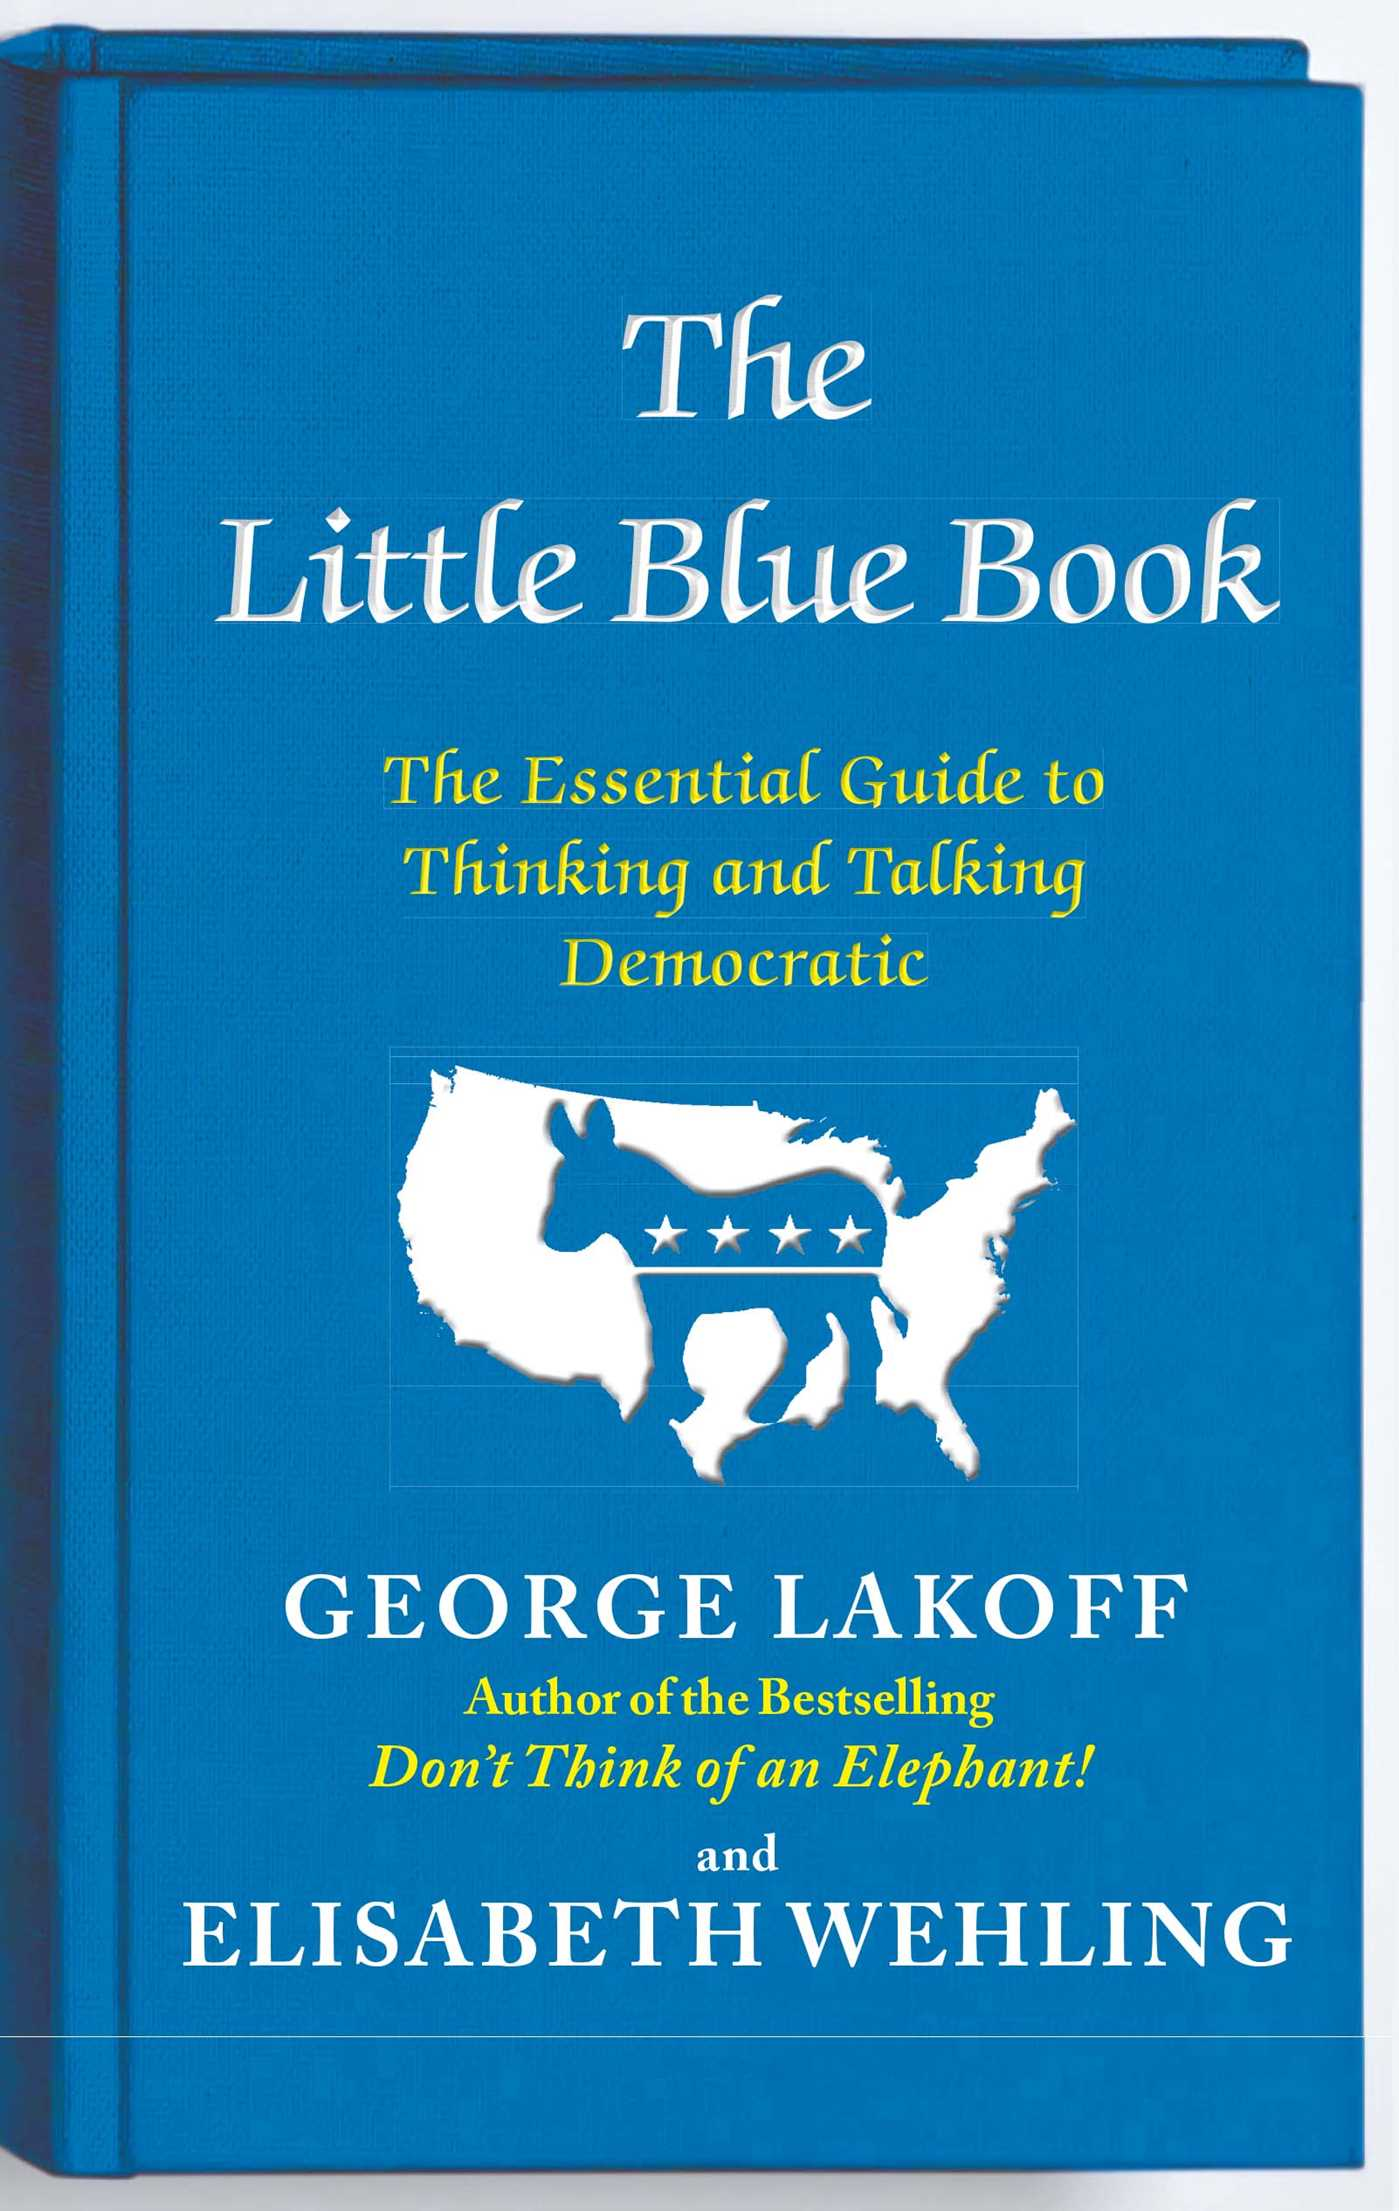 The-little-blue-book-9781476700014_hr